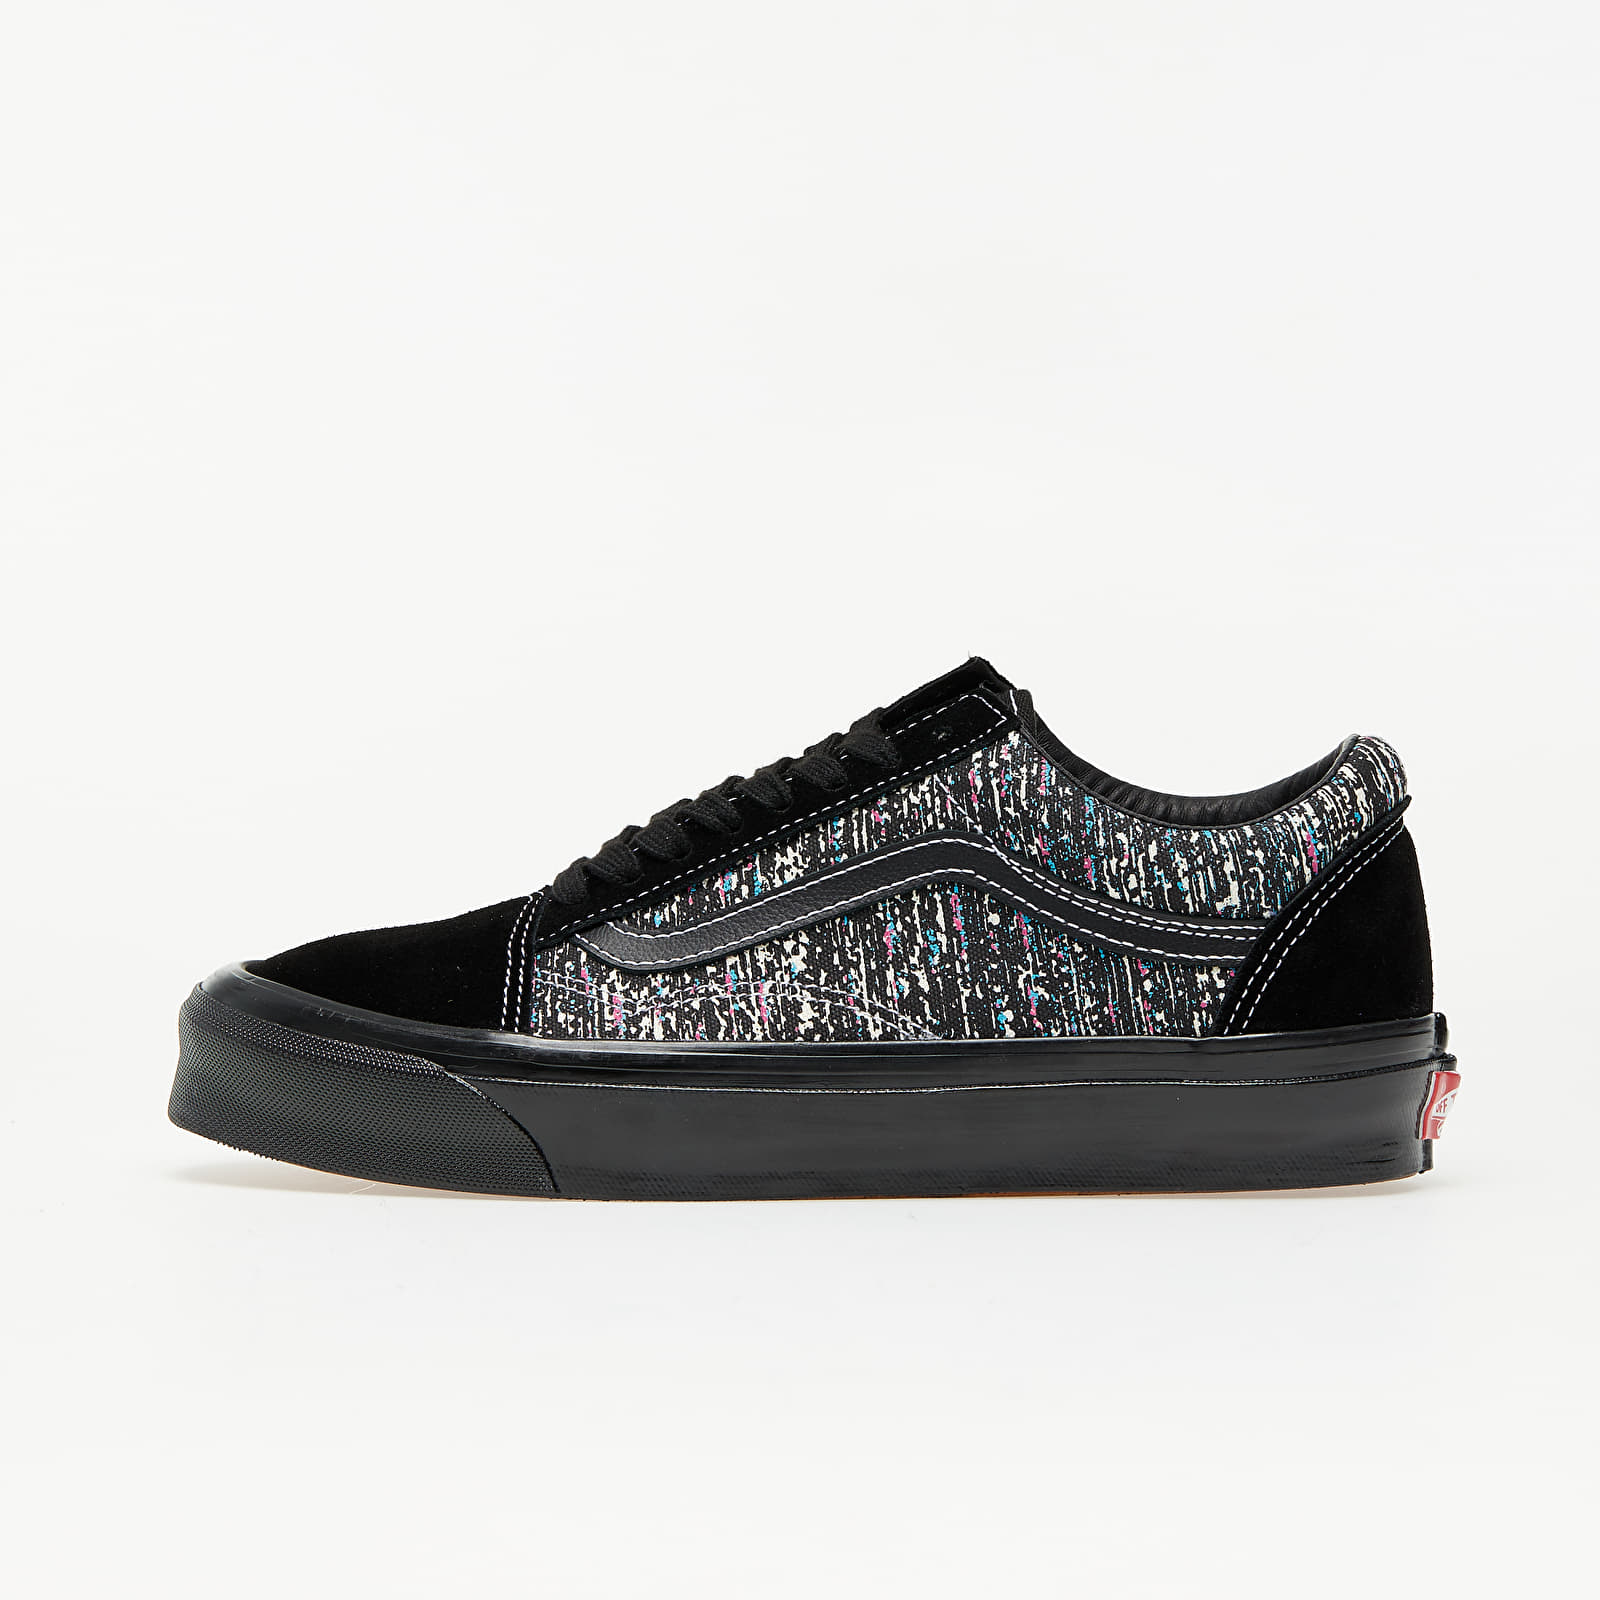 Ανδρικά παπούτσια Vans OG Old Skool LX (OG Static Print) Black/ Black